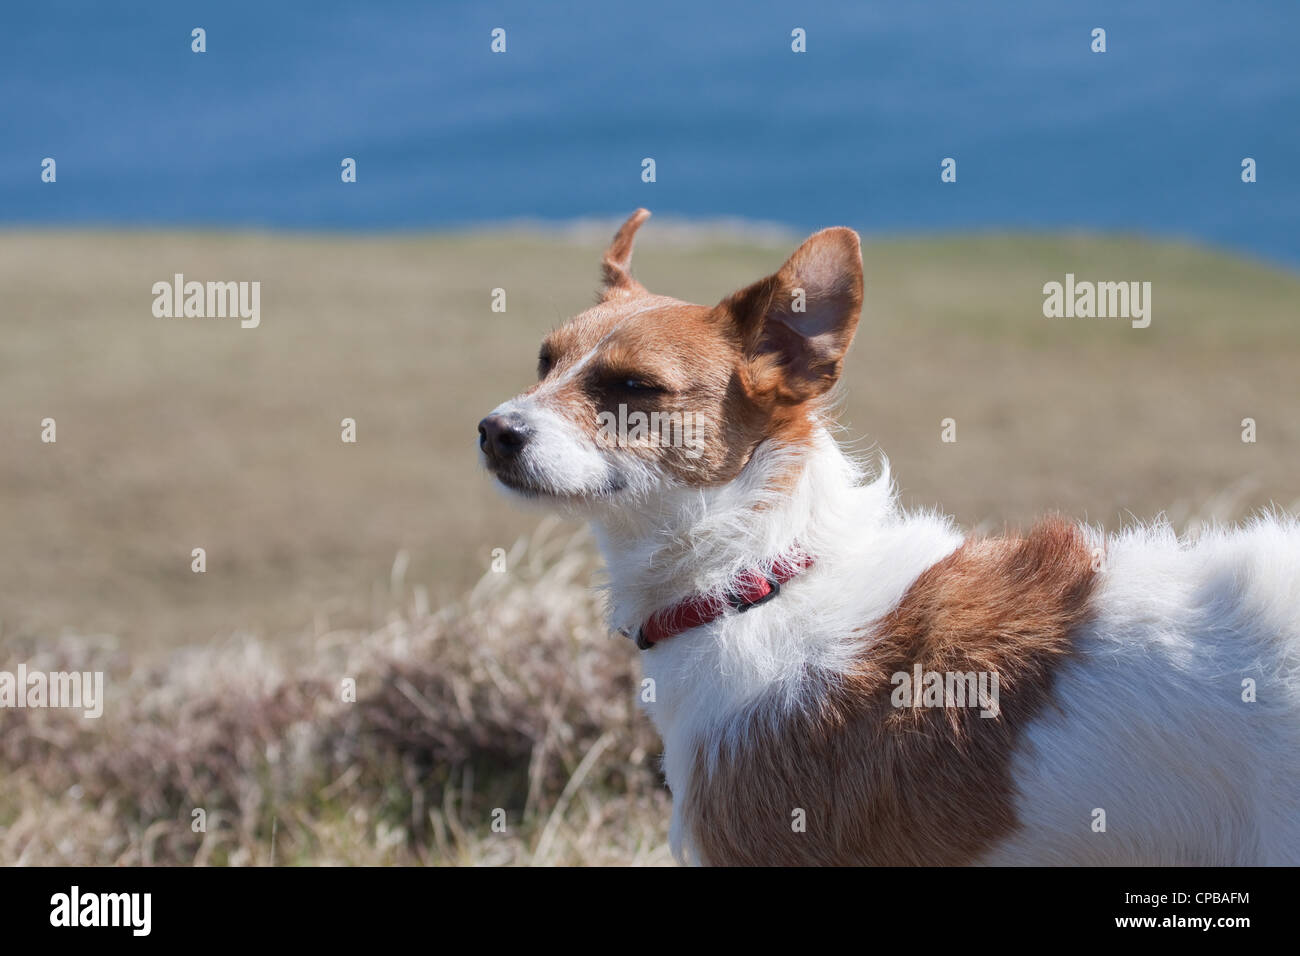 A cute Jack Russell Terrier with his ears blowing in the wind near the sea - Stock Image